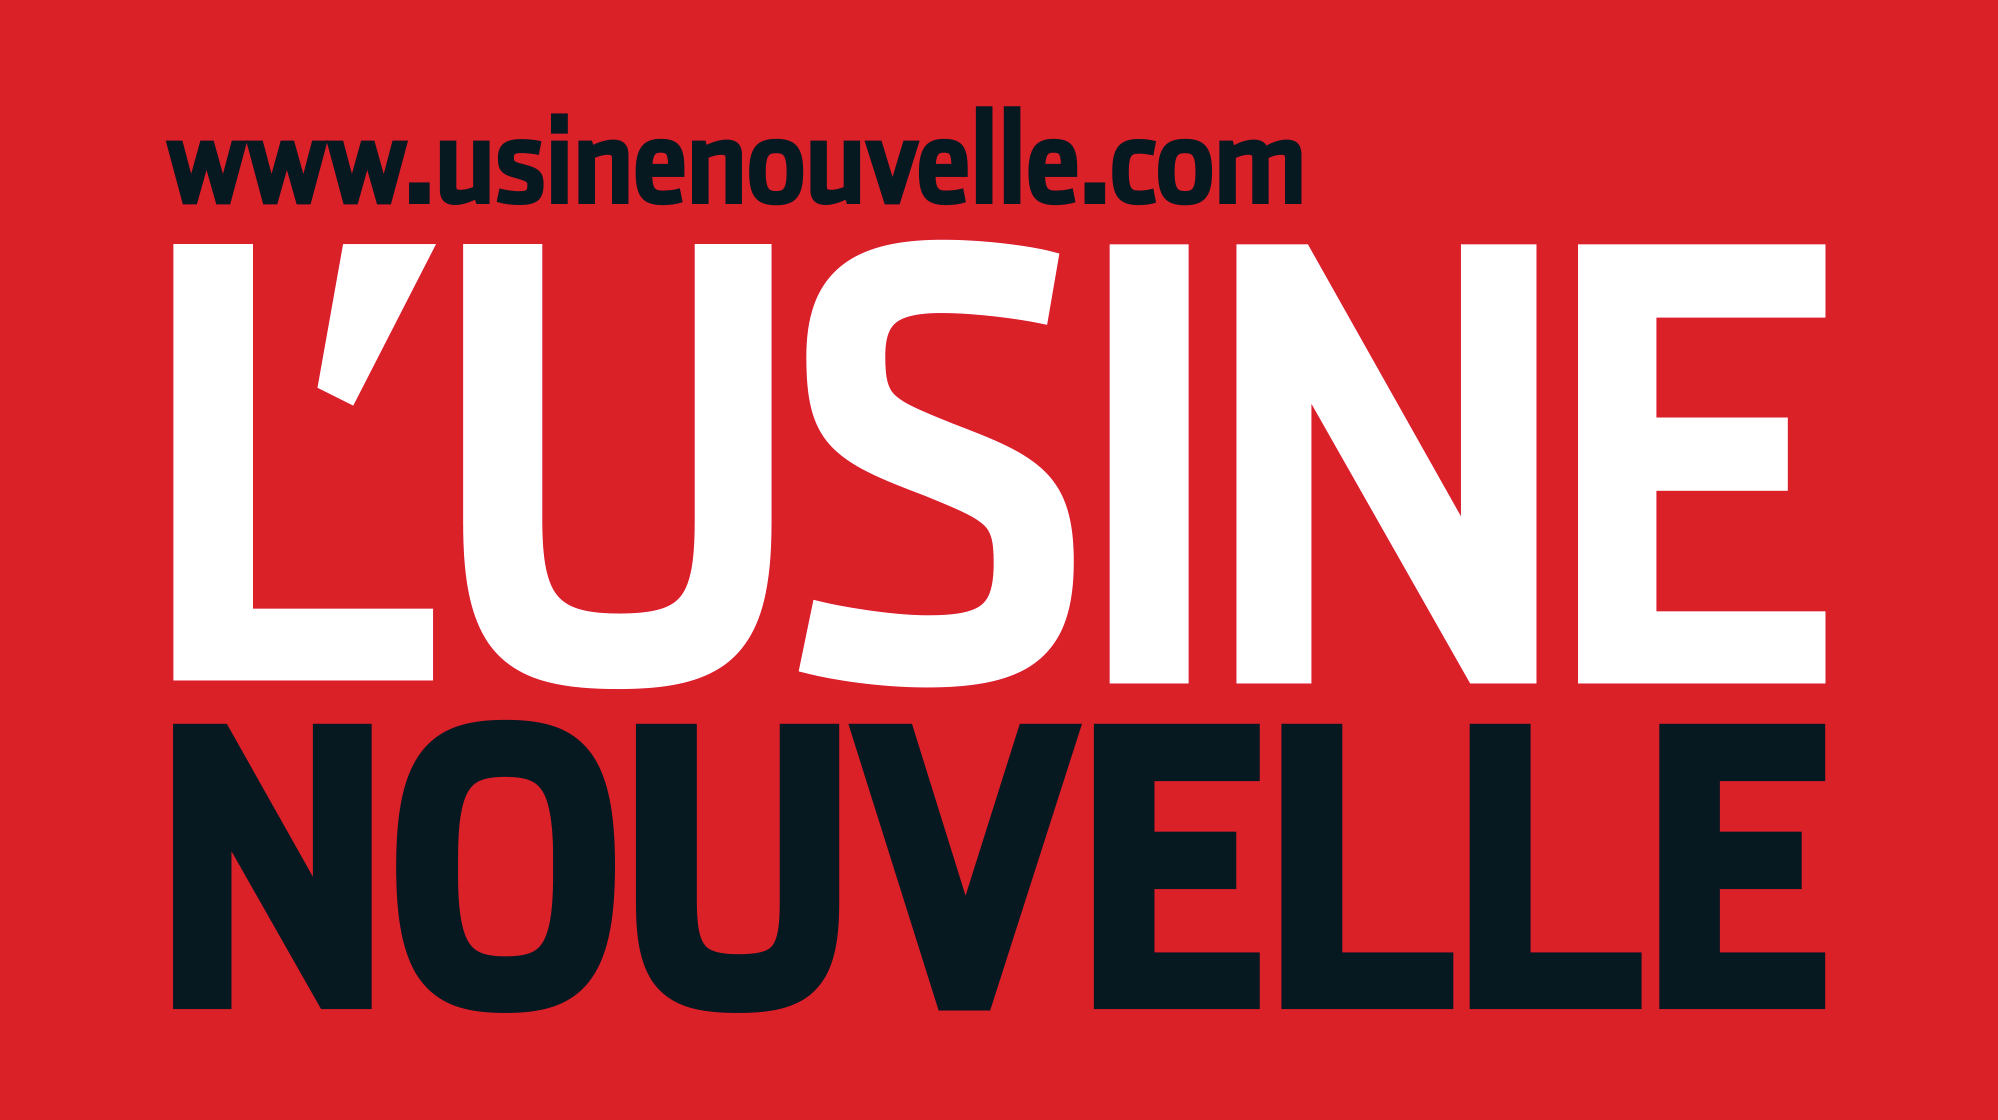 USINENOUVELLE.com is the leader in professional B2B information